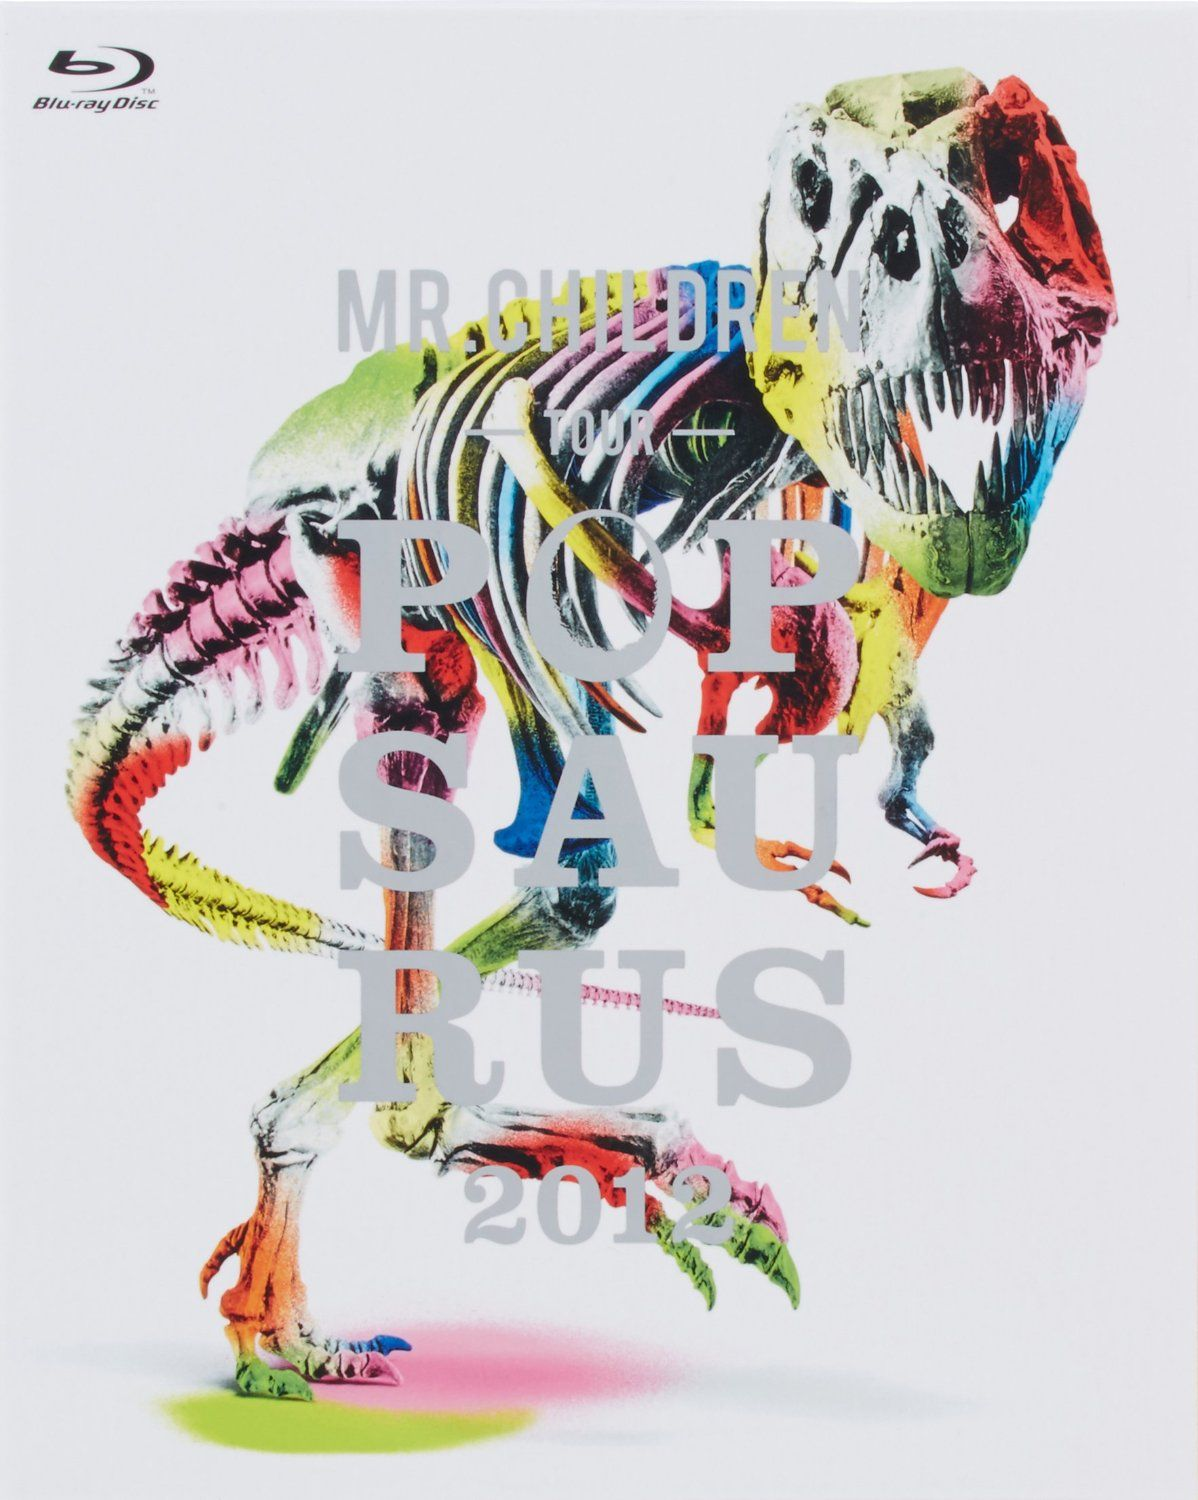 LIVE Blu-ray Mr.Children TOUR POPSAURUS 2012 DVD・ブルーレイ|Amazon.co.jp (アマゾン)